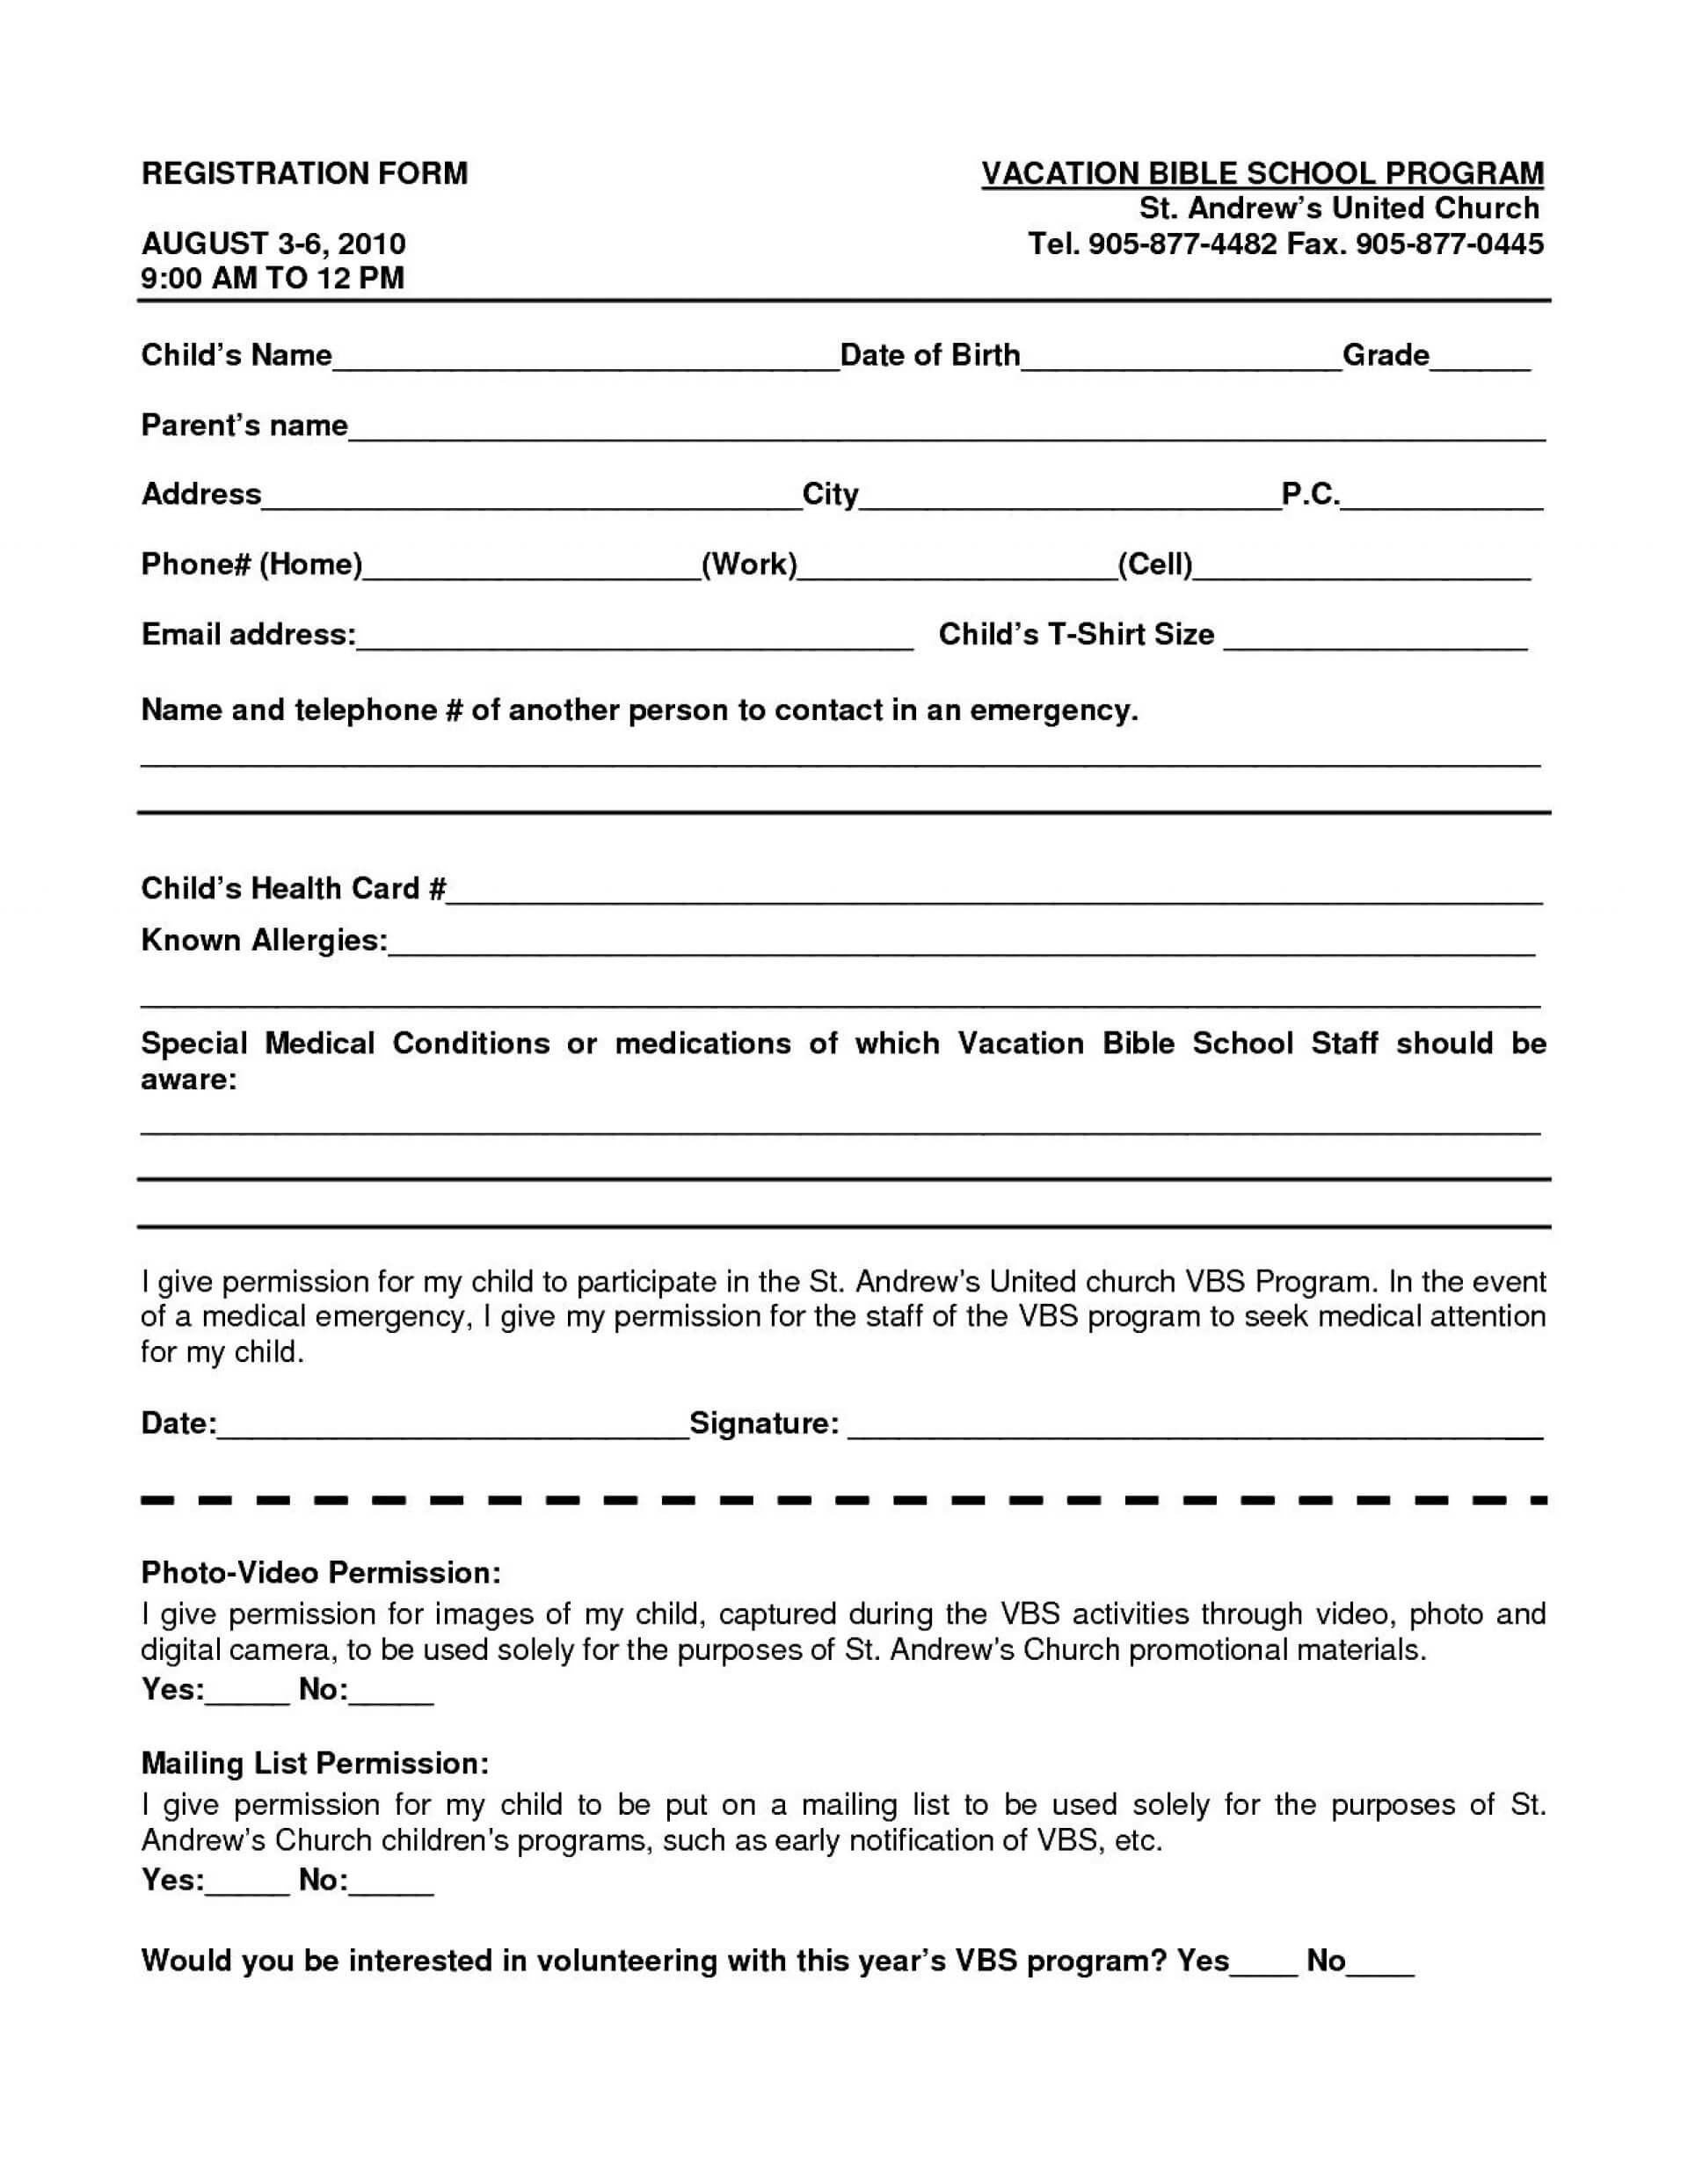 016 School Registration Form Template Word Ideas Free In Throughout School Registration Form Template Word